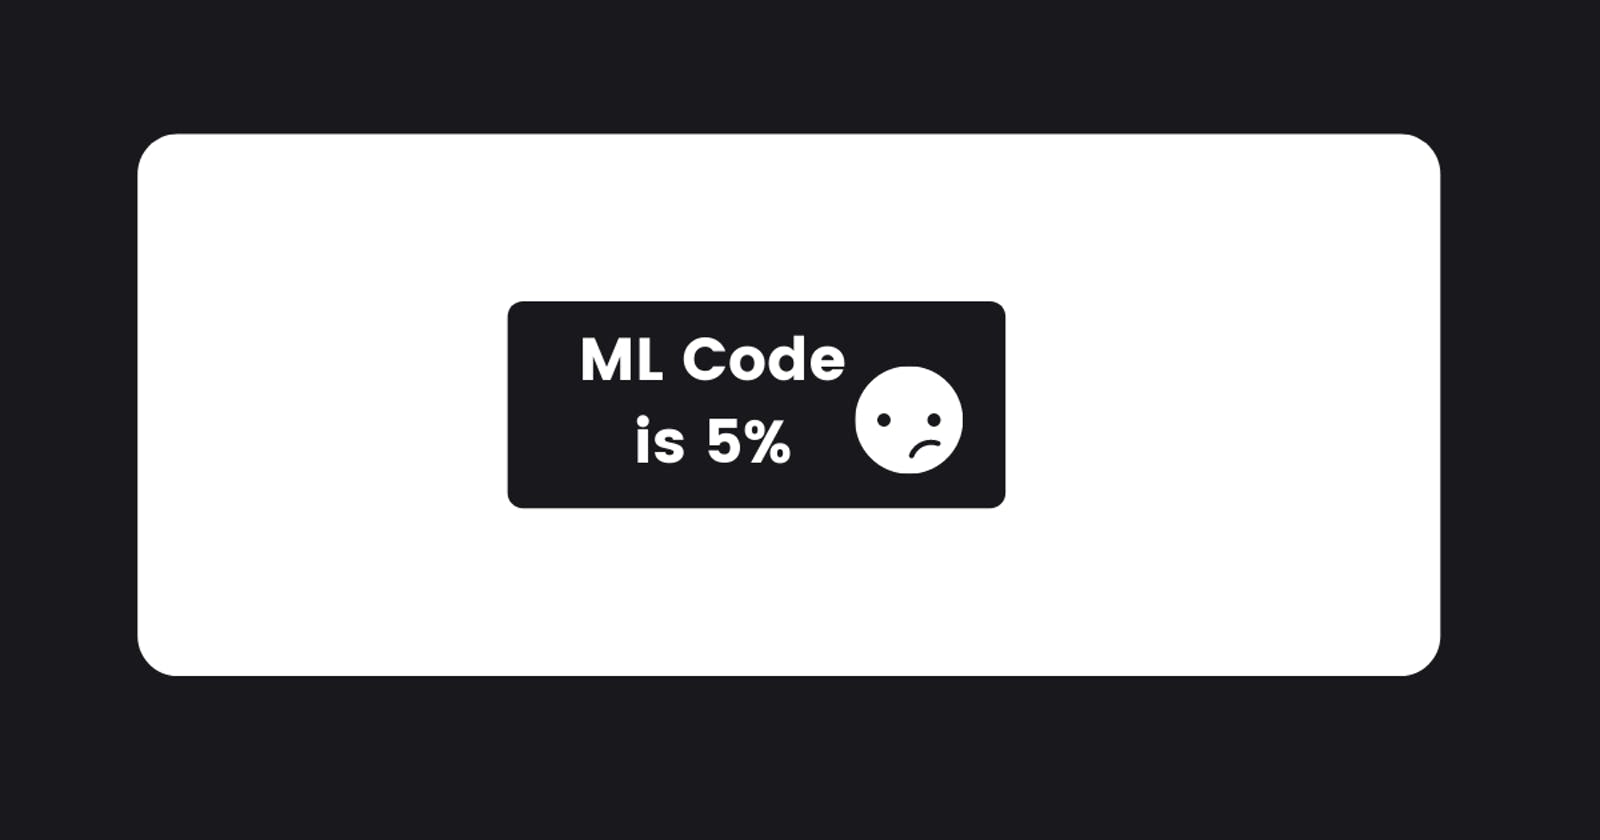 ML Model is 5% - What should we be doing?